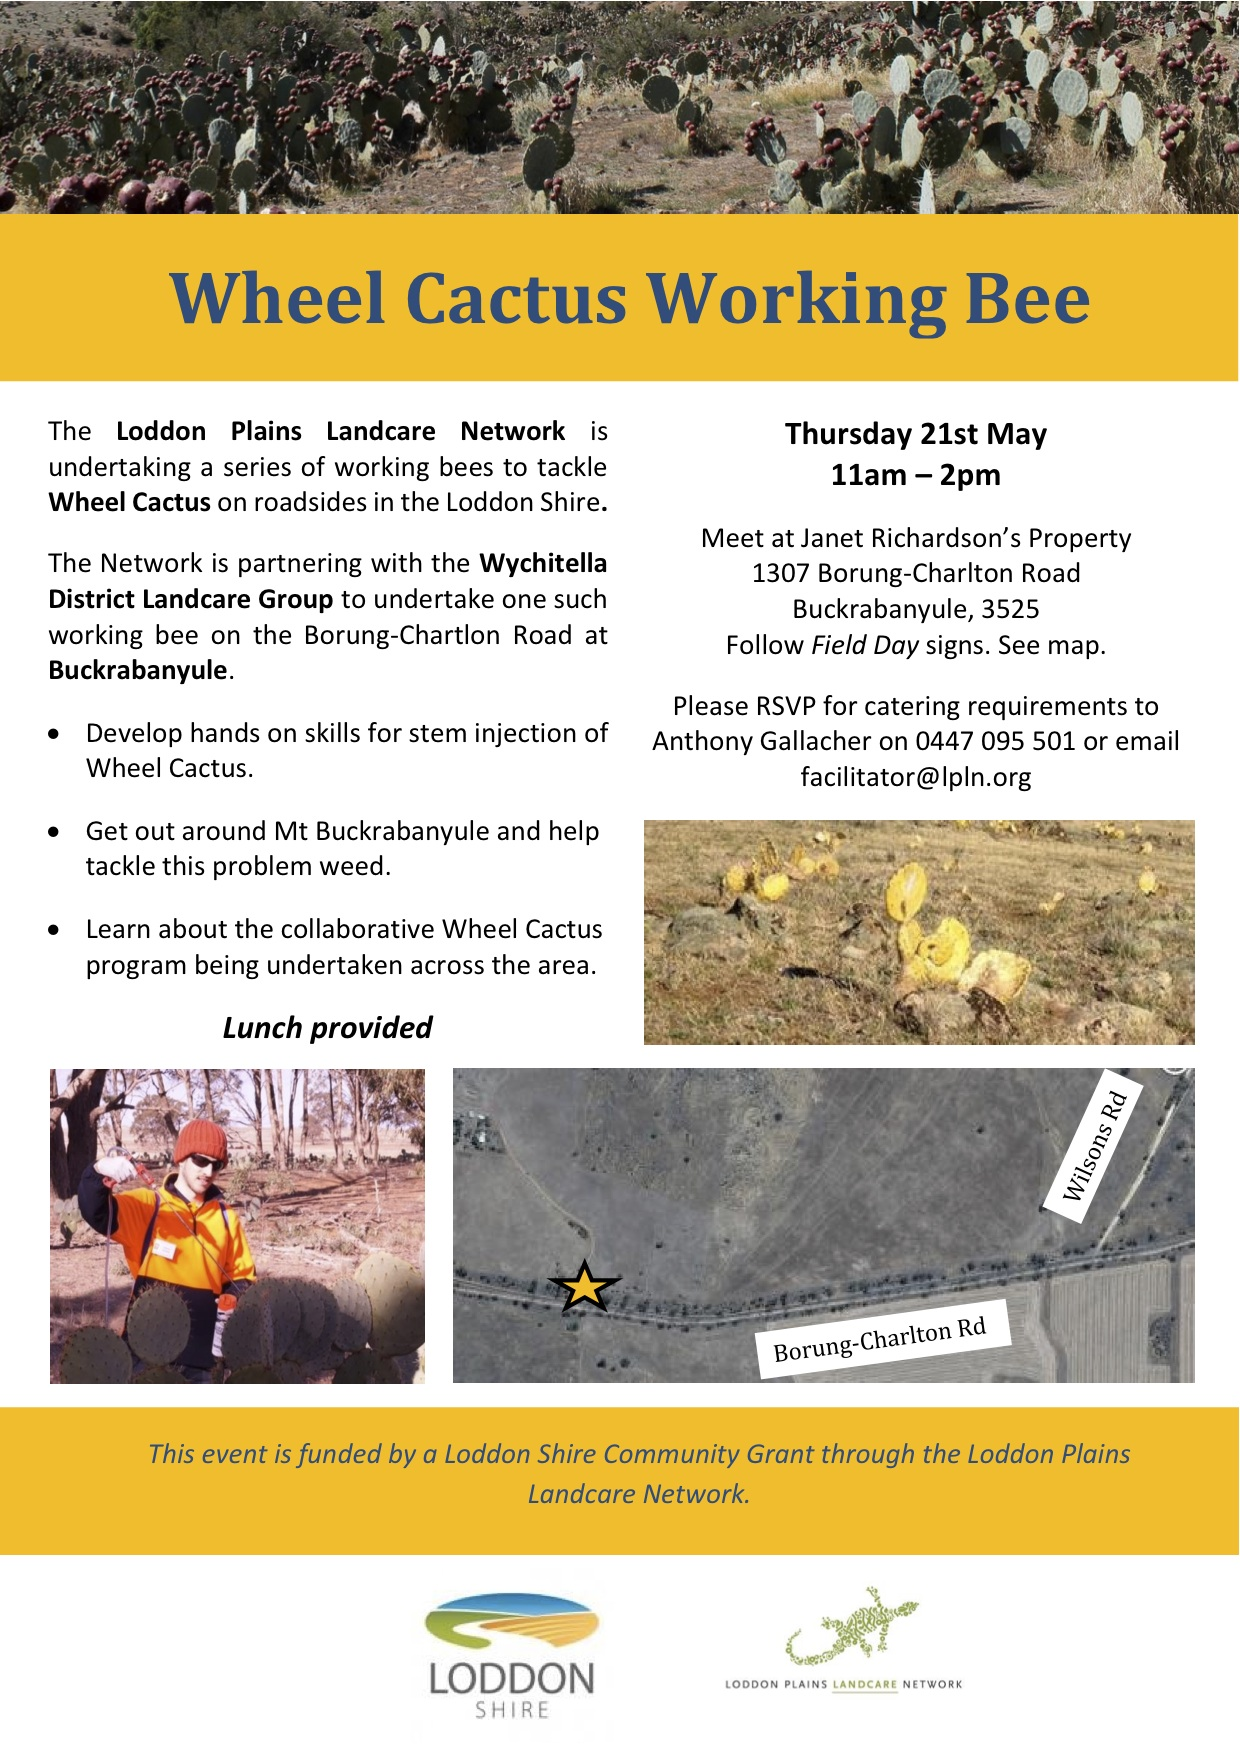 Wheel Cactus roadside working bee flyer May 2015